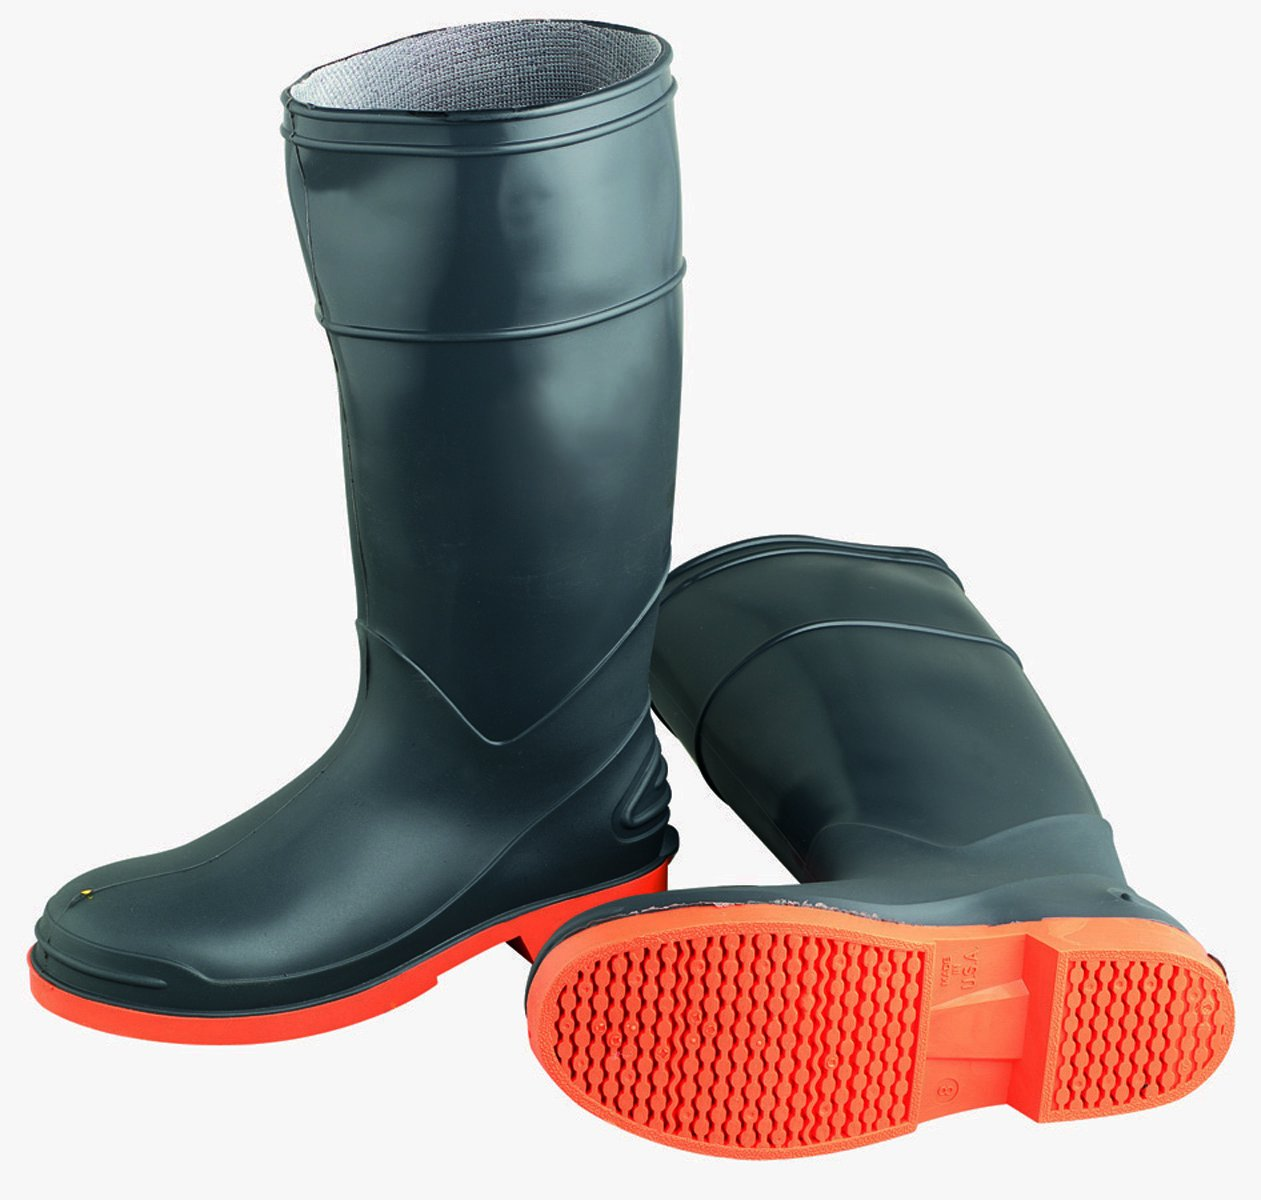 ONGUARD 87982 PVC/Nitrile Sureflex Men's Steel Toe KneeBoots with Saftey-Loc Outsole, 16'' Height, Grey/Orange, Size 14 by ONGUARD Industries (Image #1)